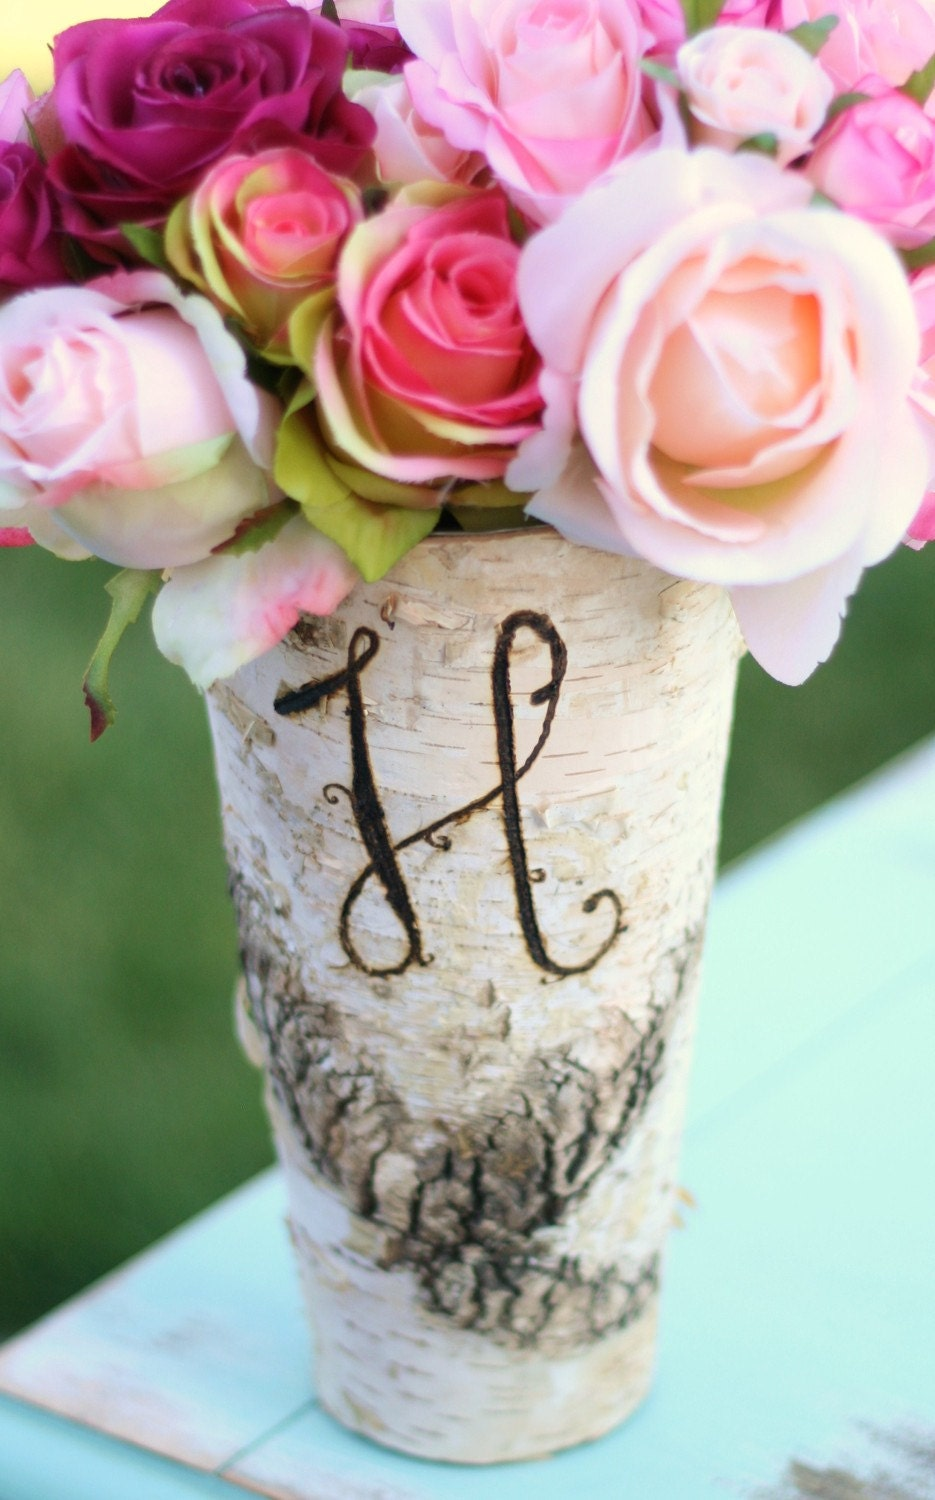 Personalized Monogrammed Tall Birch Wood Vase Rustic Decor (Item Number 140176) - braggingbags